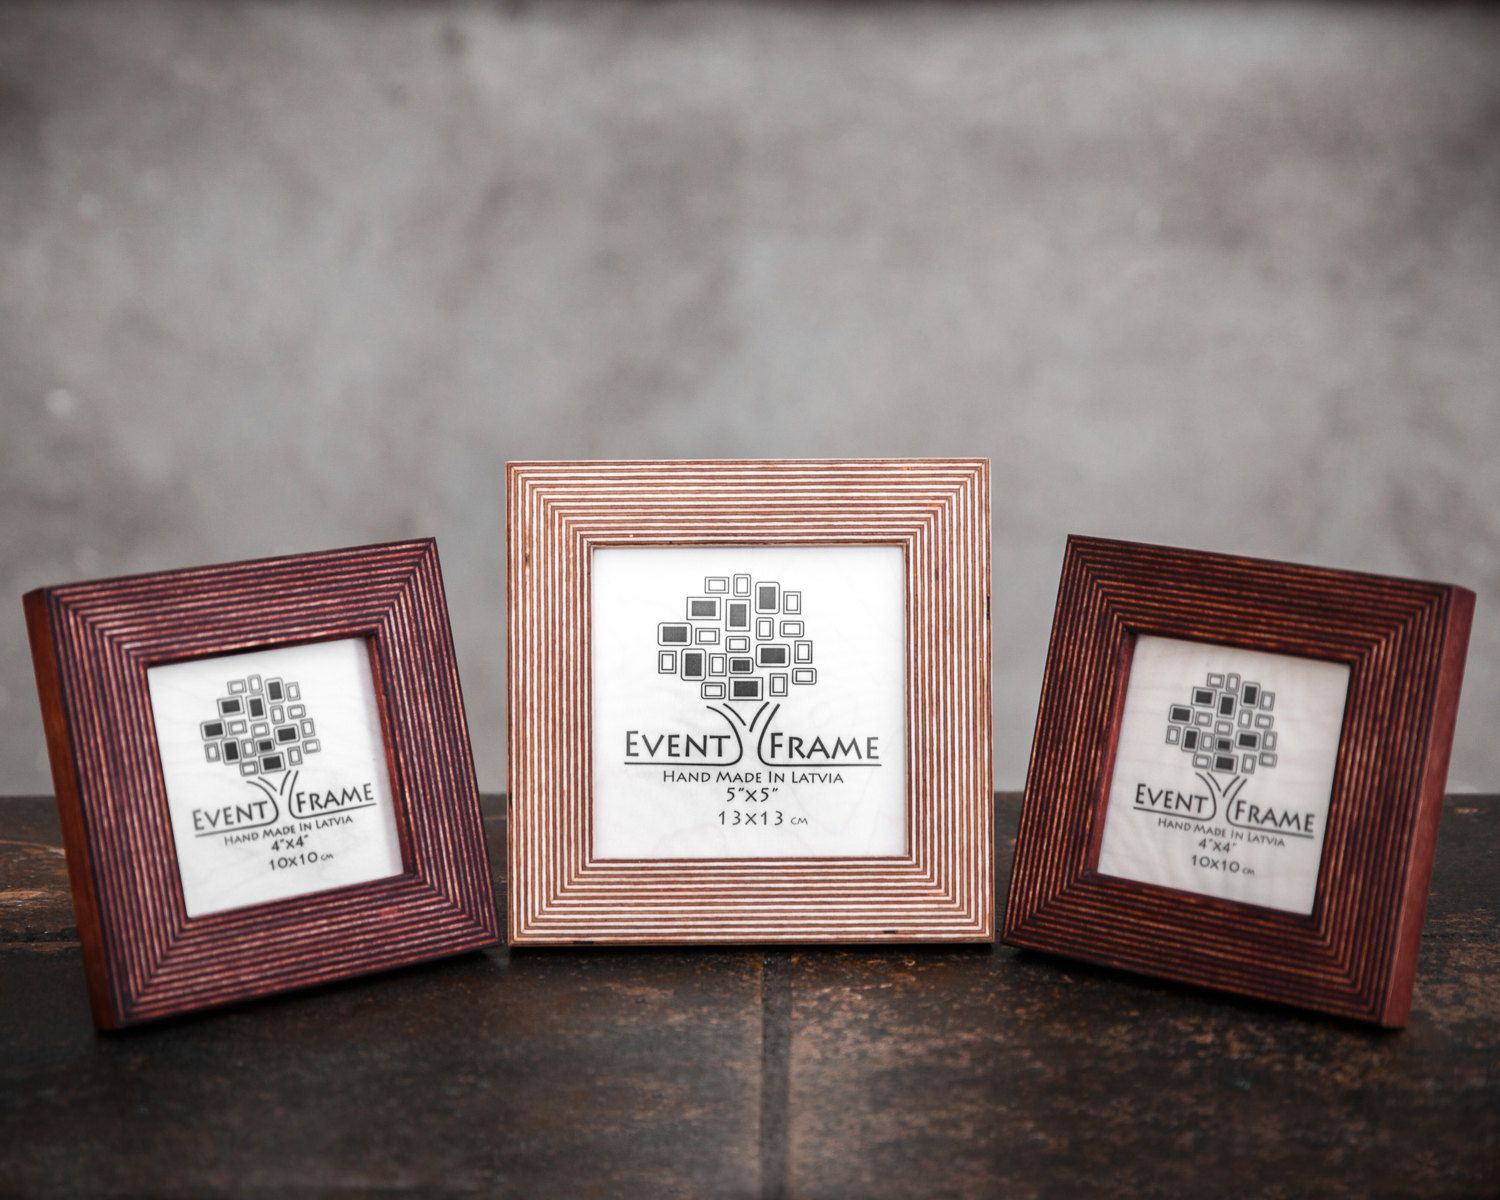 Gallery Frame Set Of 3 Table Top Frames Free Standing Frames Square Picture Frame 4x4 5x5 Frames Instagram Fr Gallery Frame Set Picture Frame Designs Frame